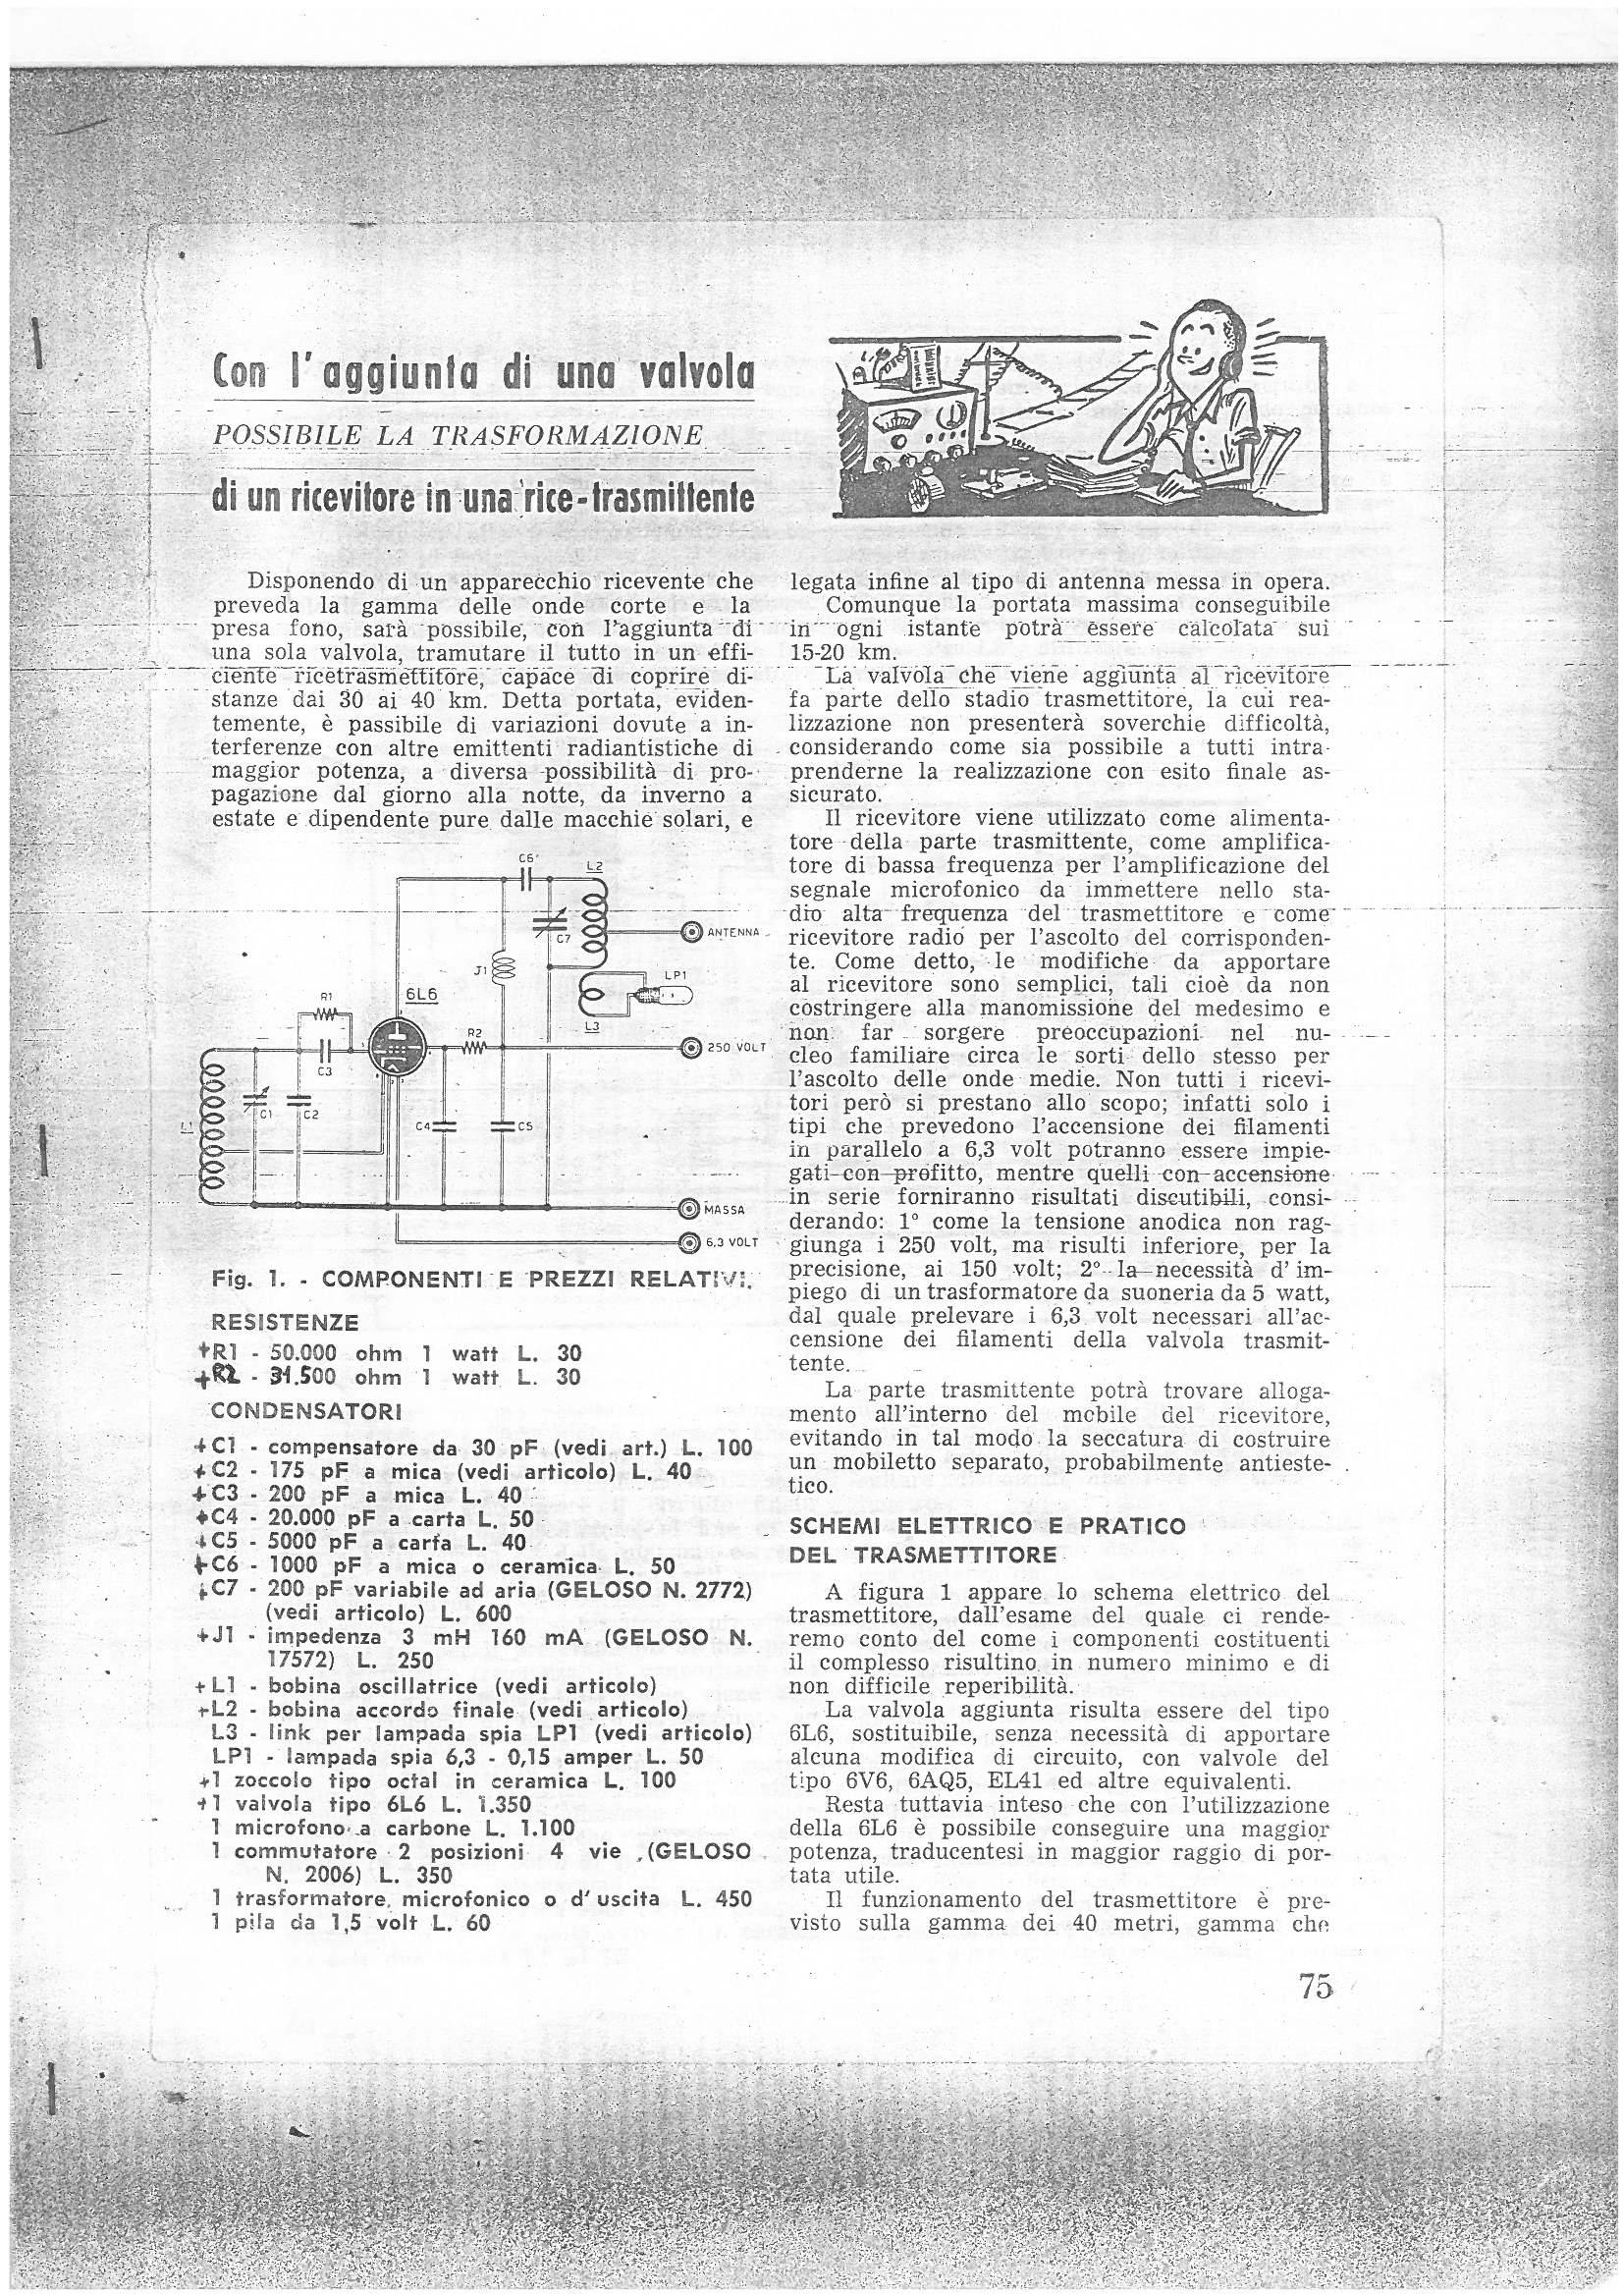 A Journey Into Building Radio Transmitters With Vacuum Tubes Telephone Circuit Schematic In Addition Simple Am Transmitter The Plate Of This Rig Requires Rf Choke See Approximate Schematics